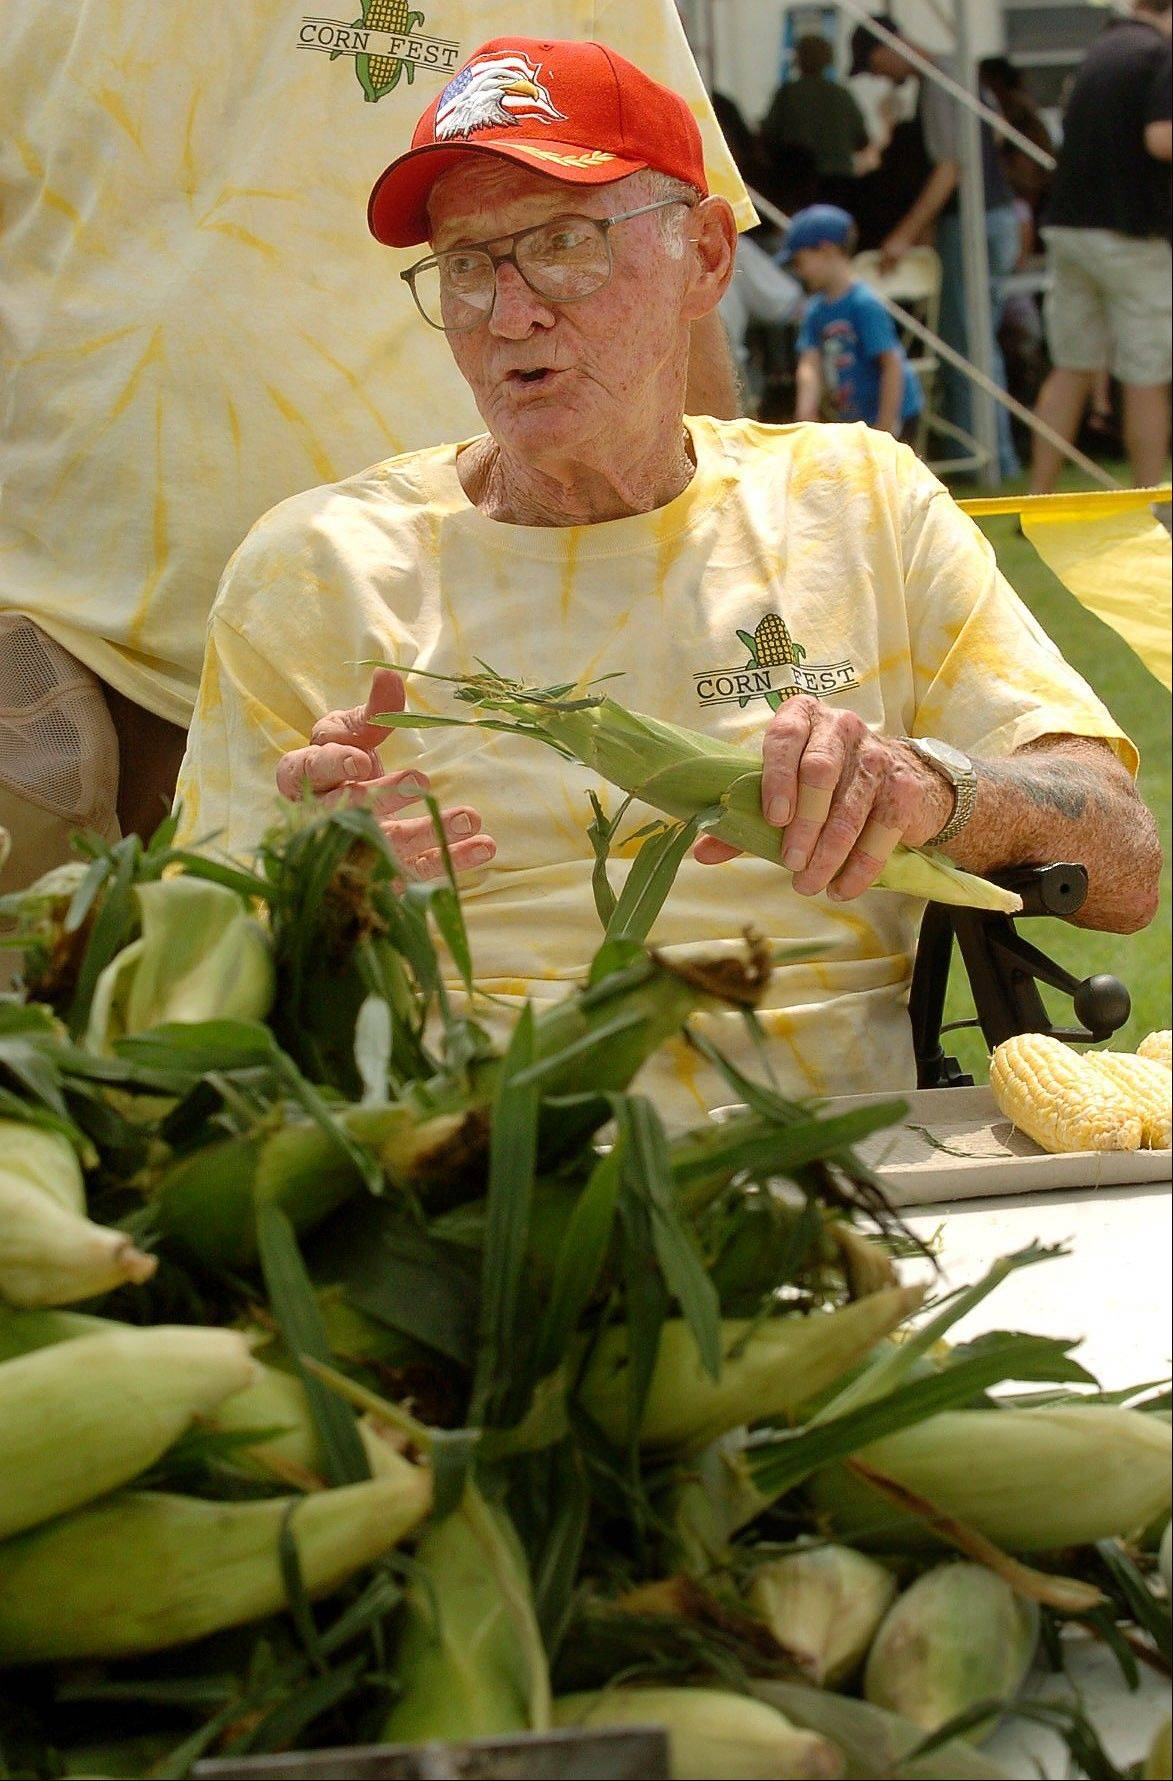 DAILY HERALD FILE PHOTOTony Voleck of Rolling Meadows has a pile of corn to husk for the 2010 Cornfest.